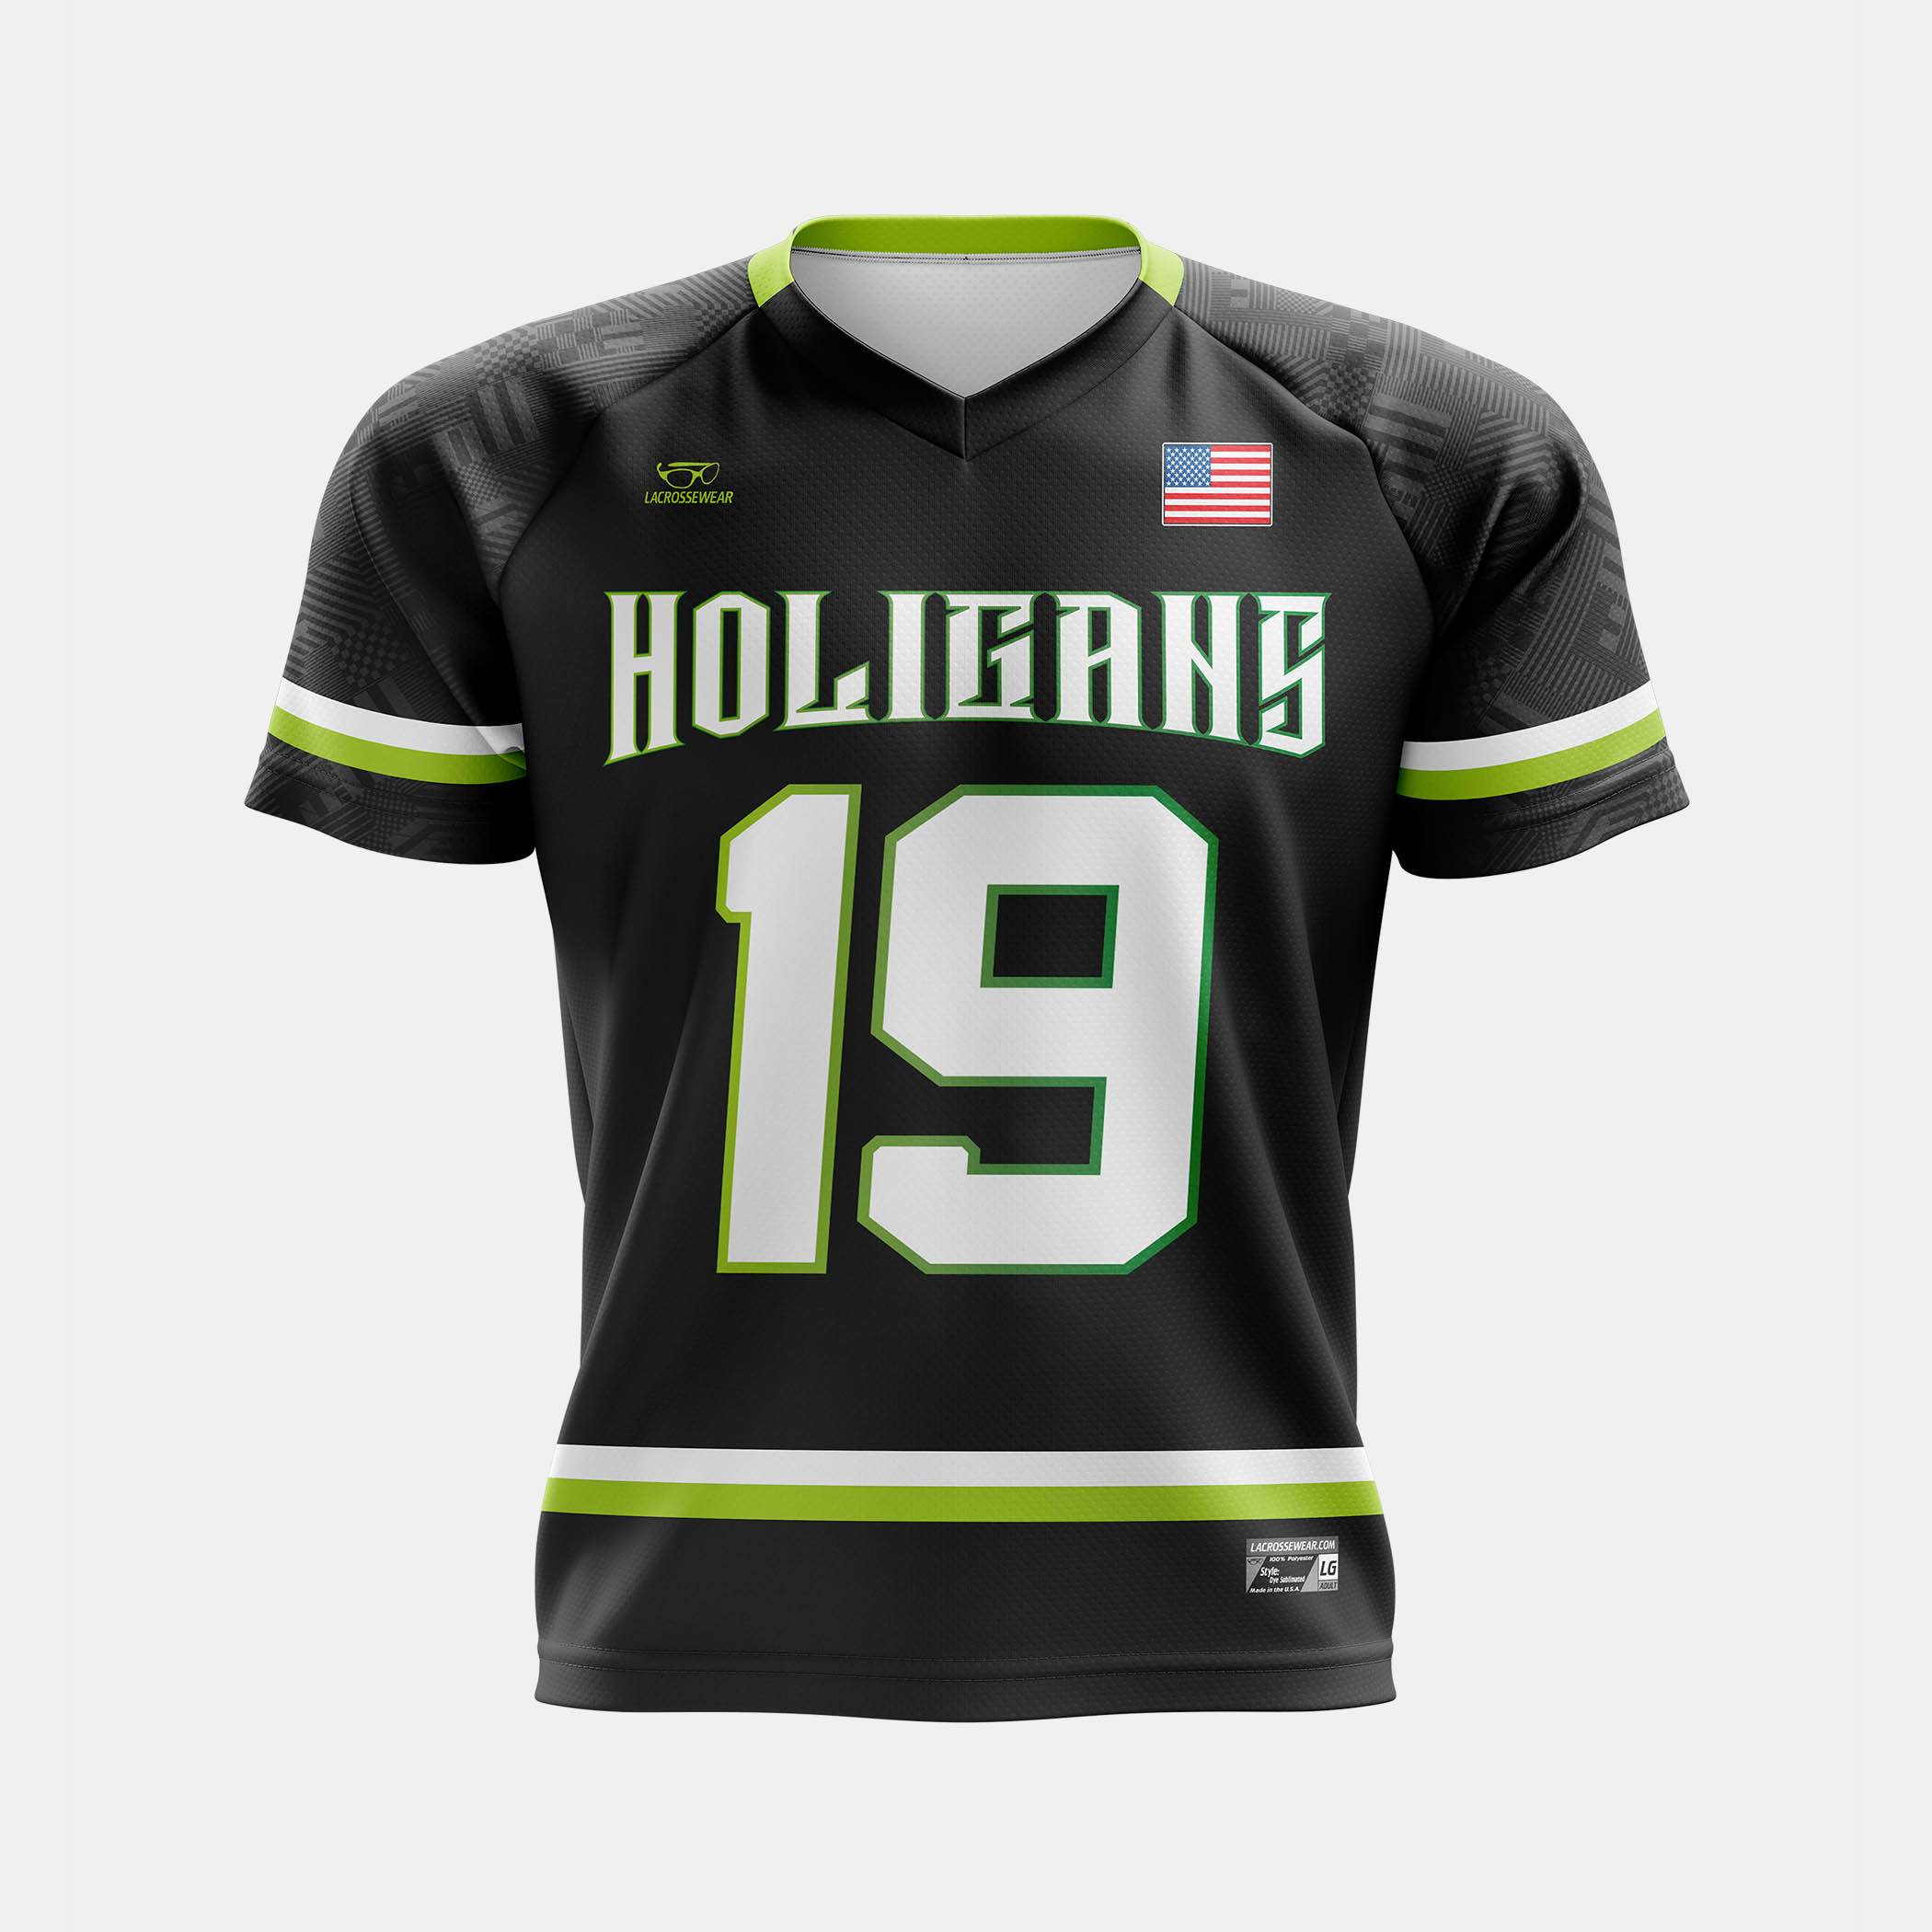 Holigans Lax Jersey Mock Front View